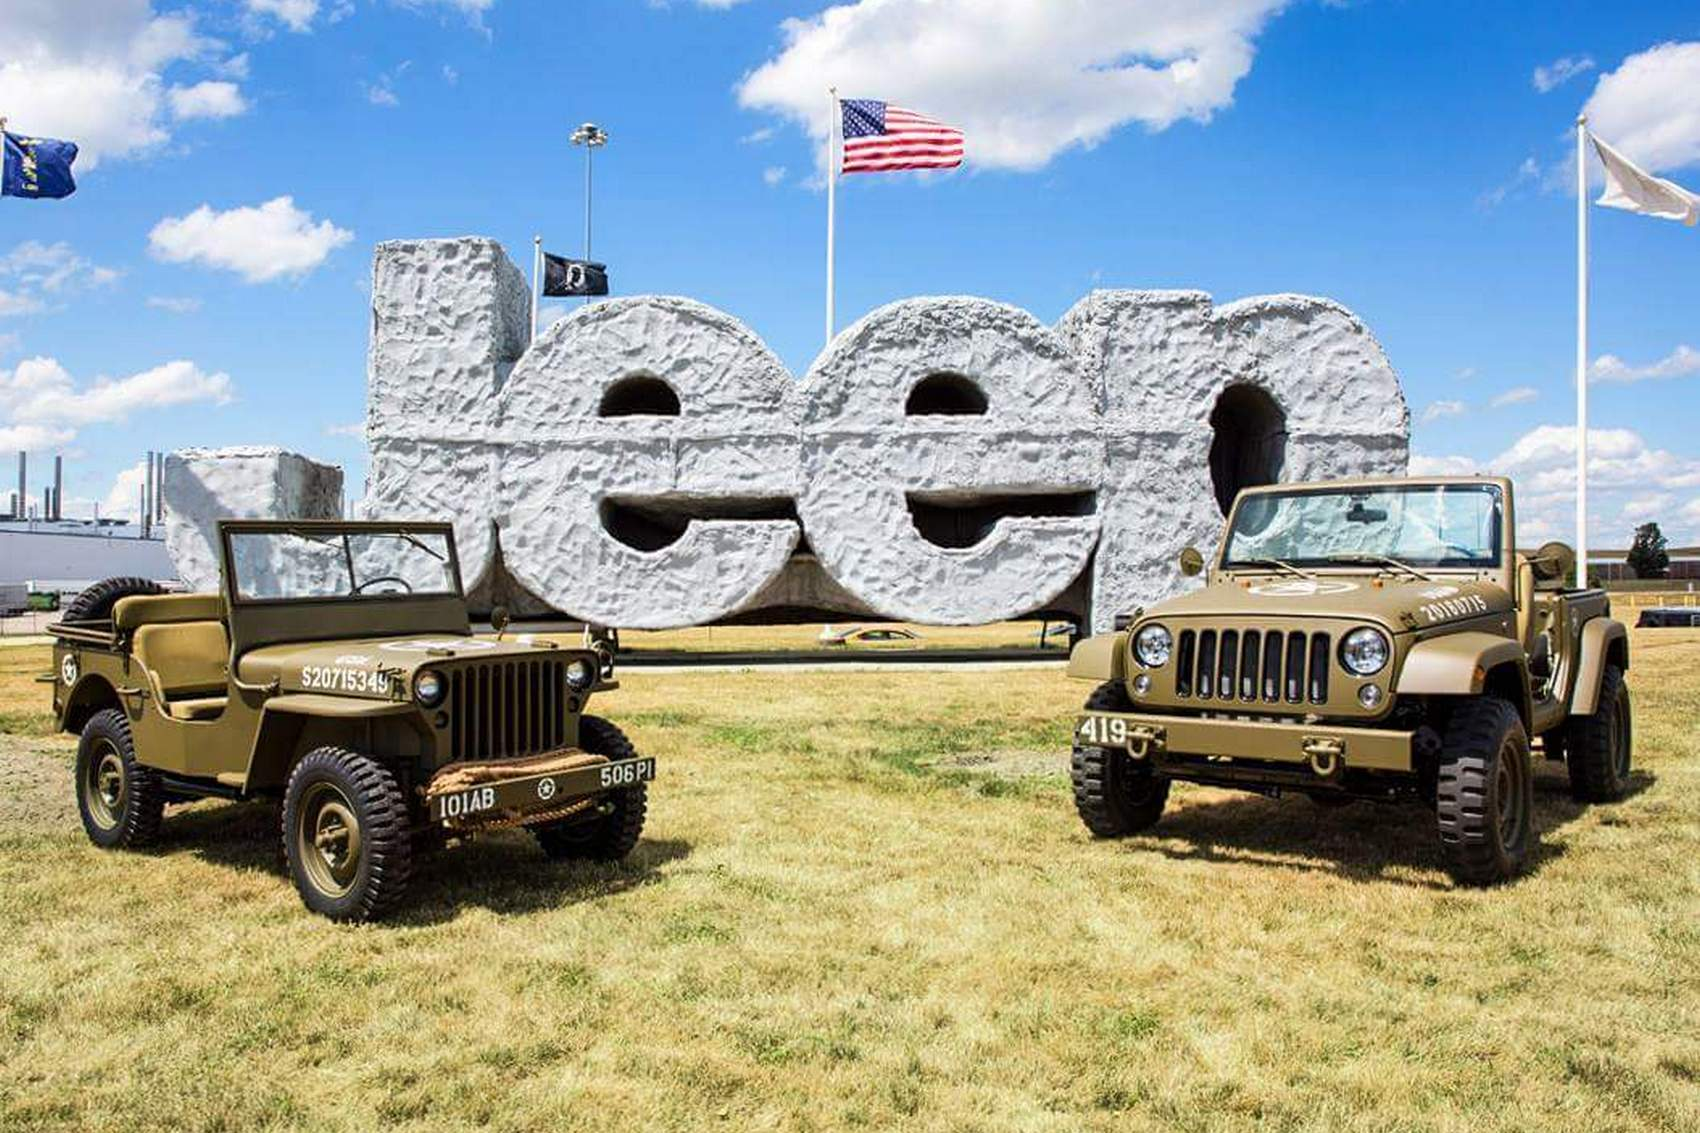 Jeep-Wrangler-75th-Salute-Concept_2016-Willys-MB_1